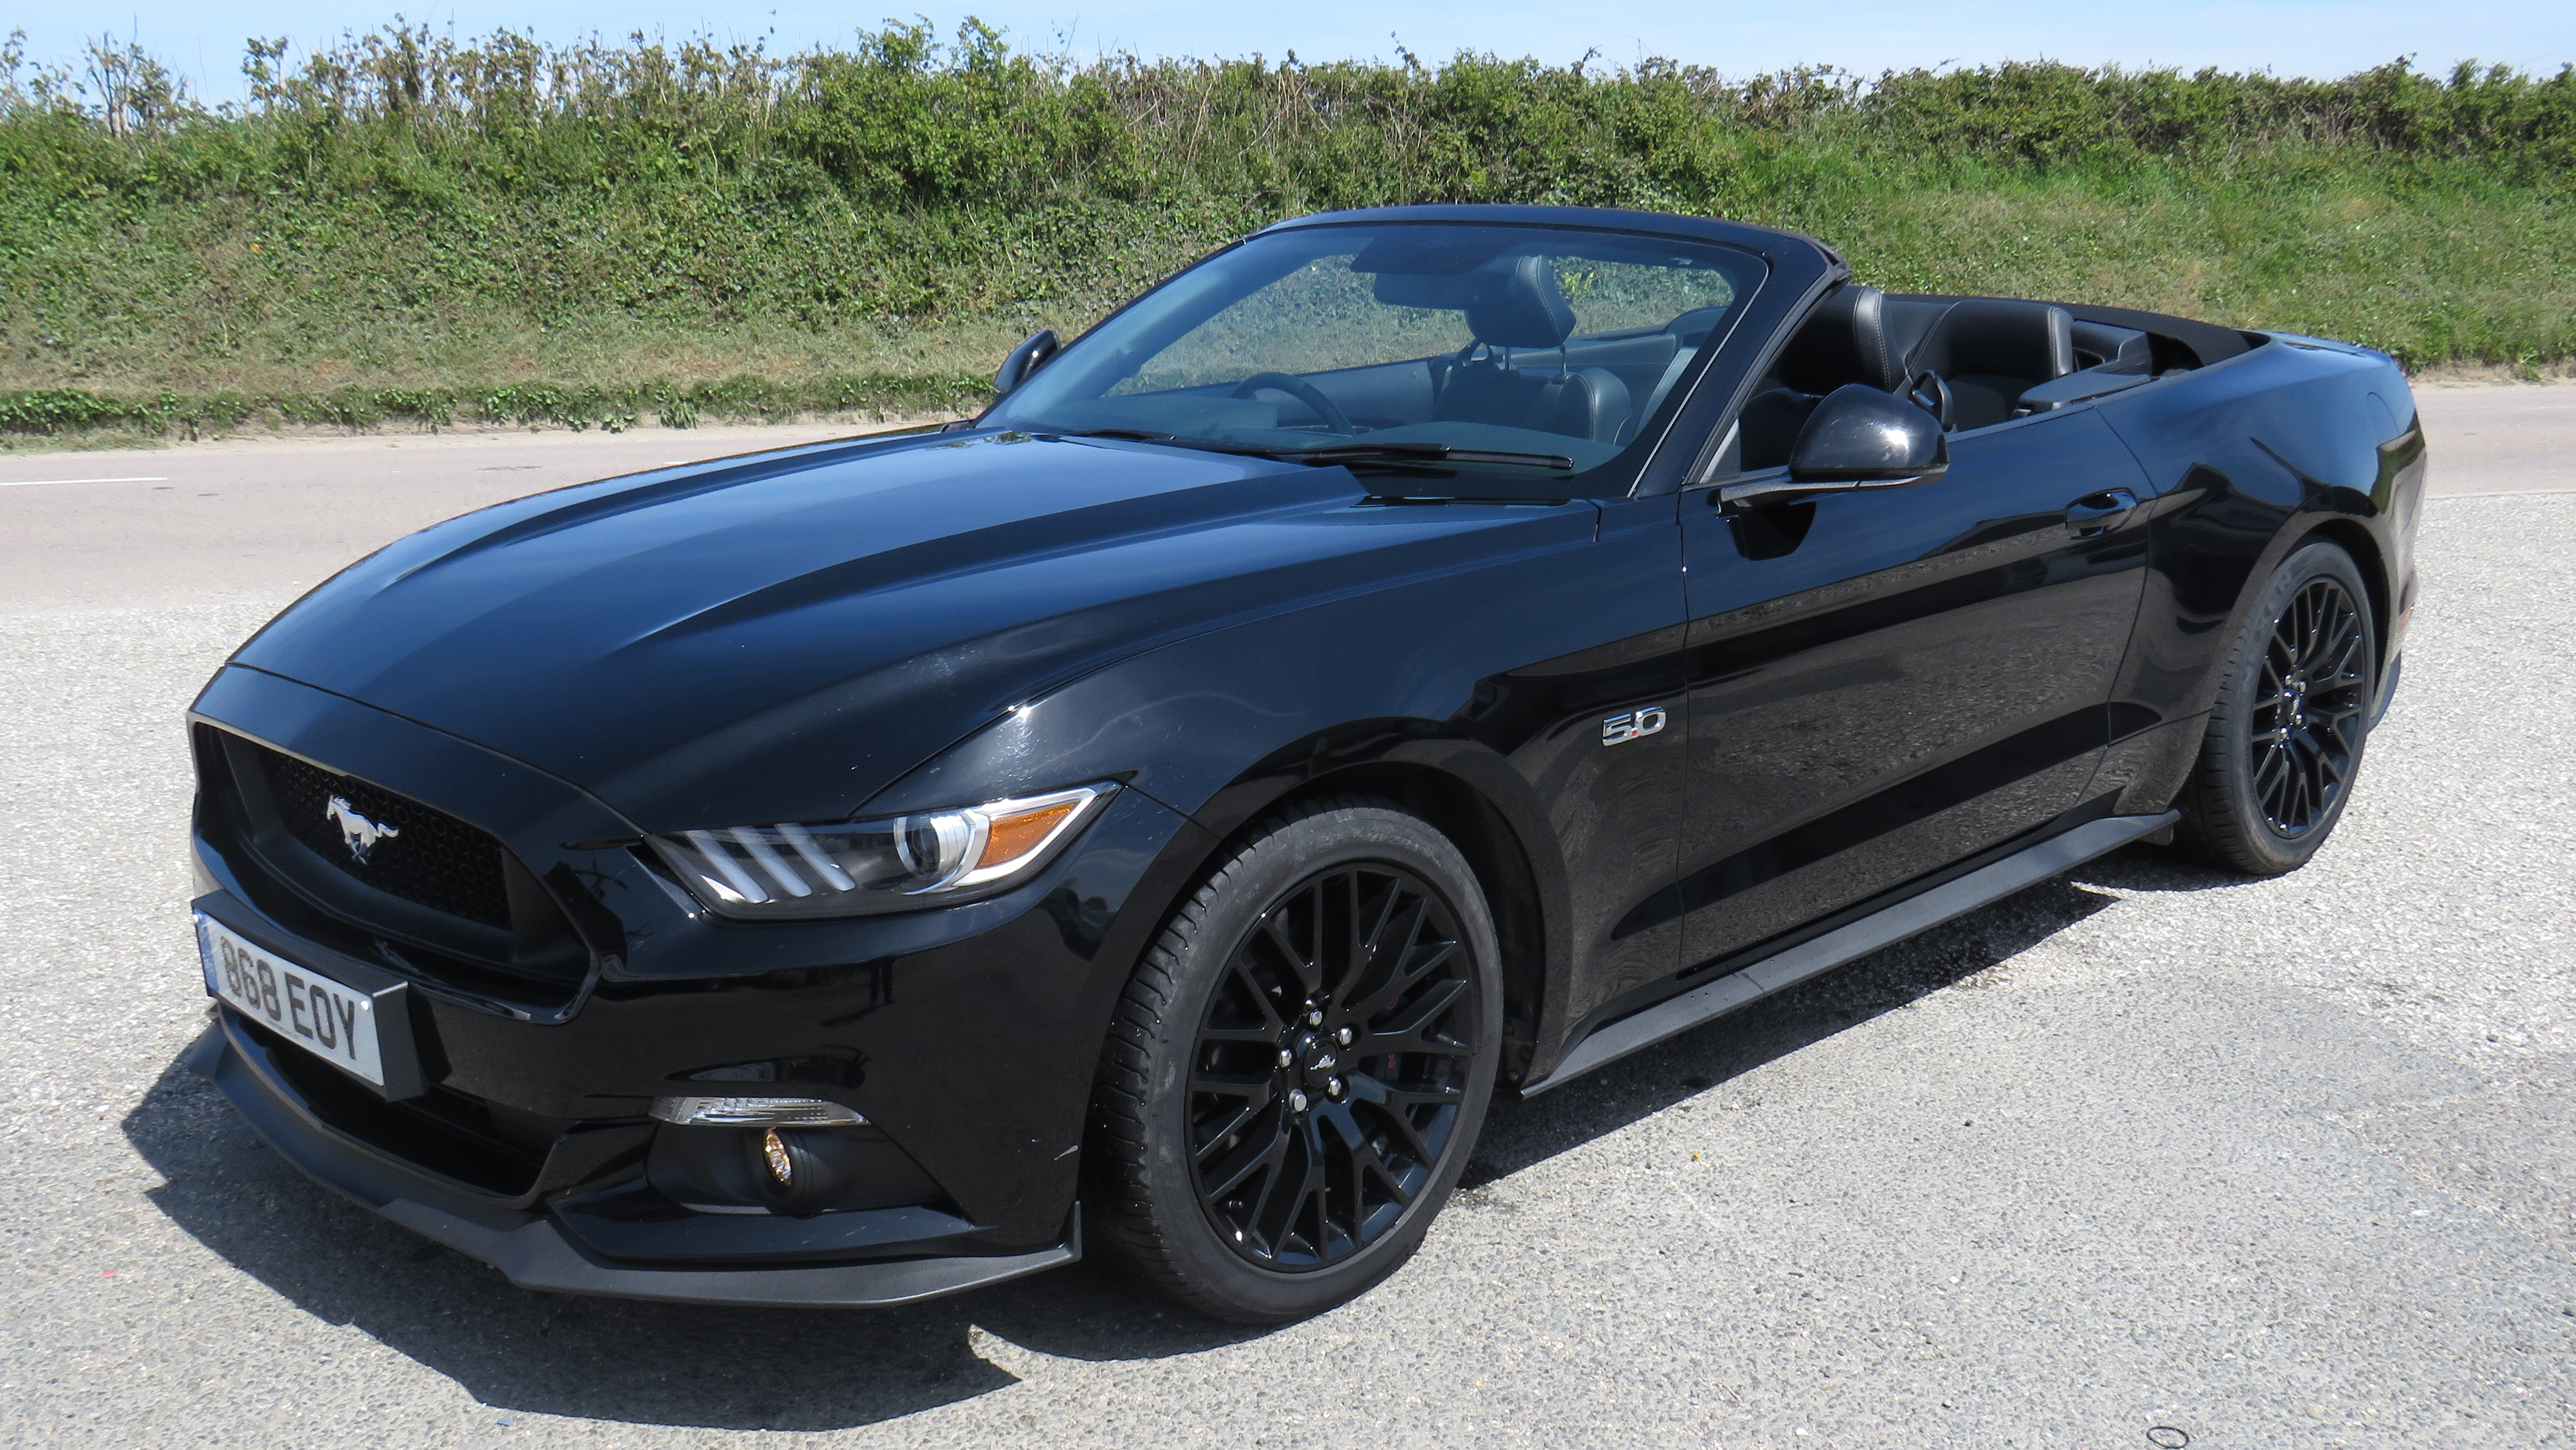 Ford Mustang 5.0L V8 GT Convertible